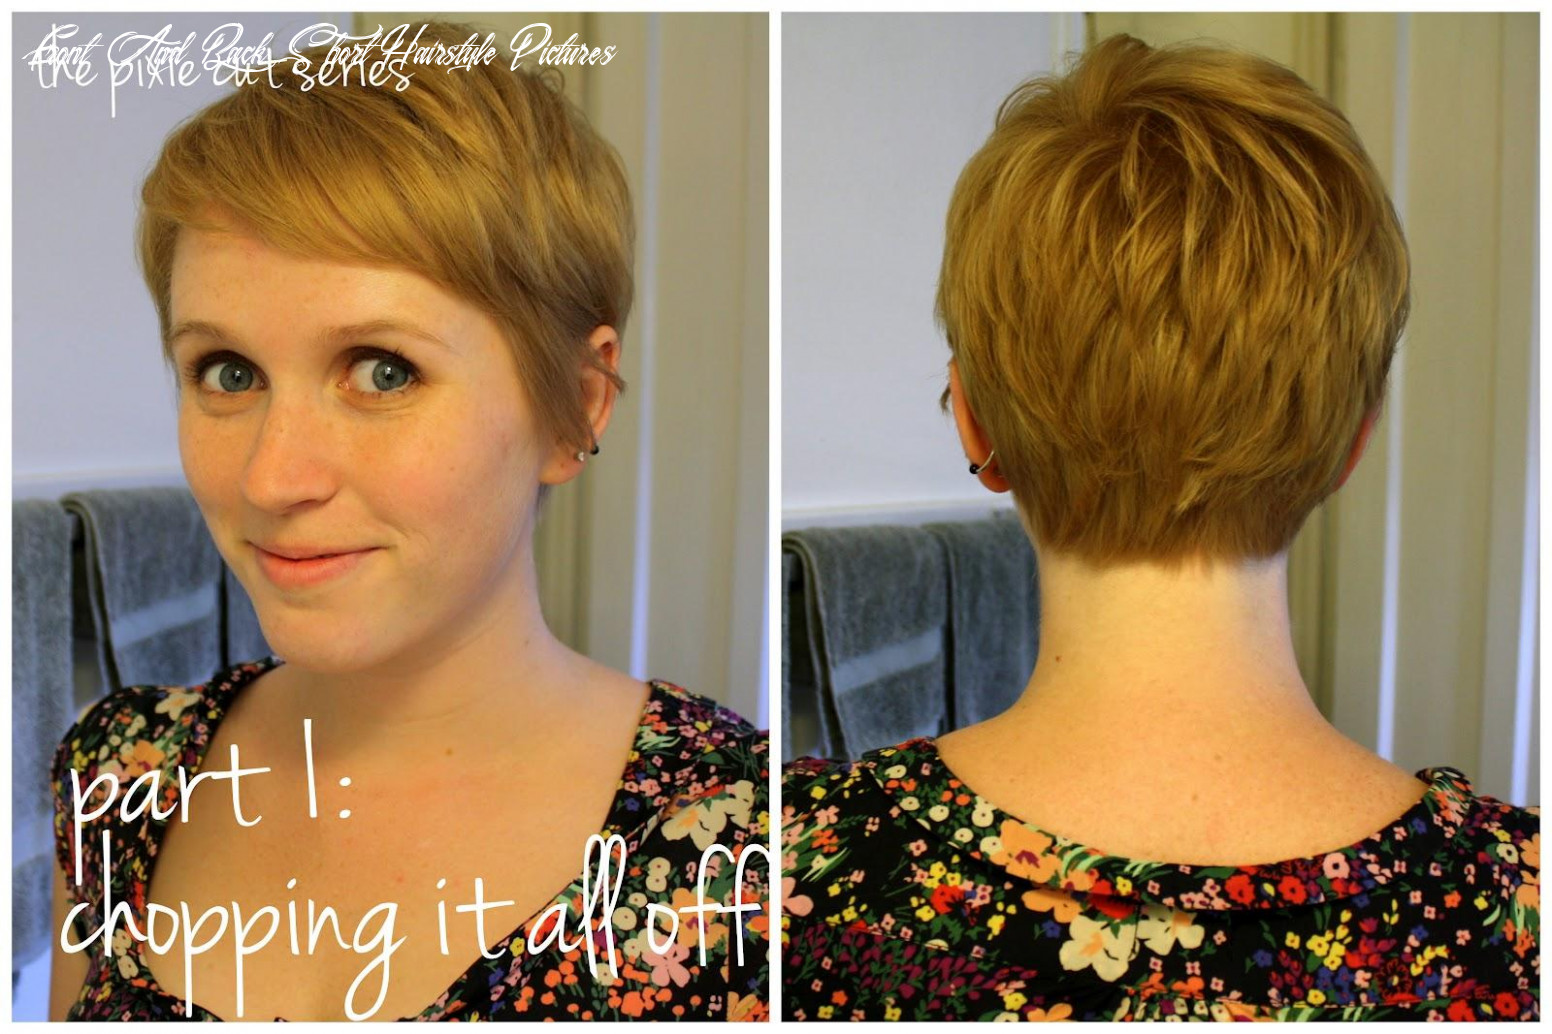 Short hairstyles view back front pixie cut series part | sophie